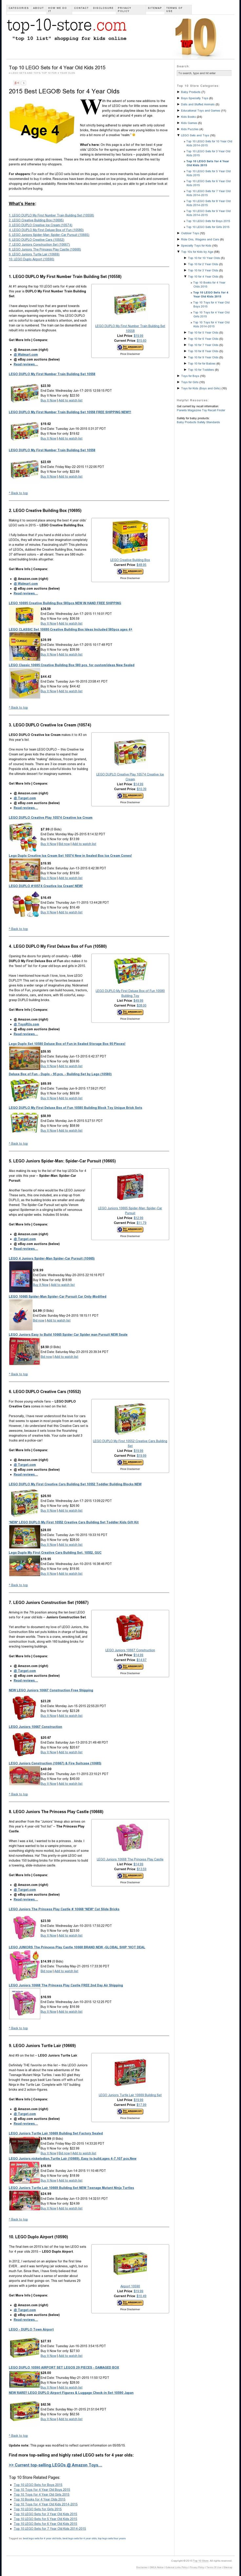 2015 Best LEGO® Sets for 4 Year Olds - Top 10 List @ Top 10 Store